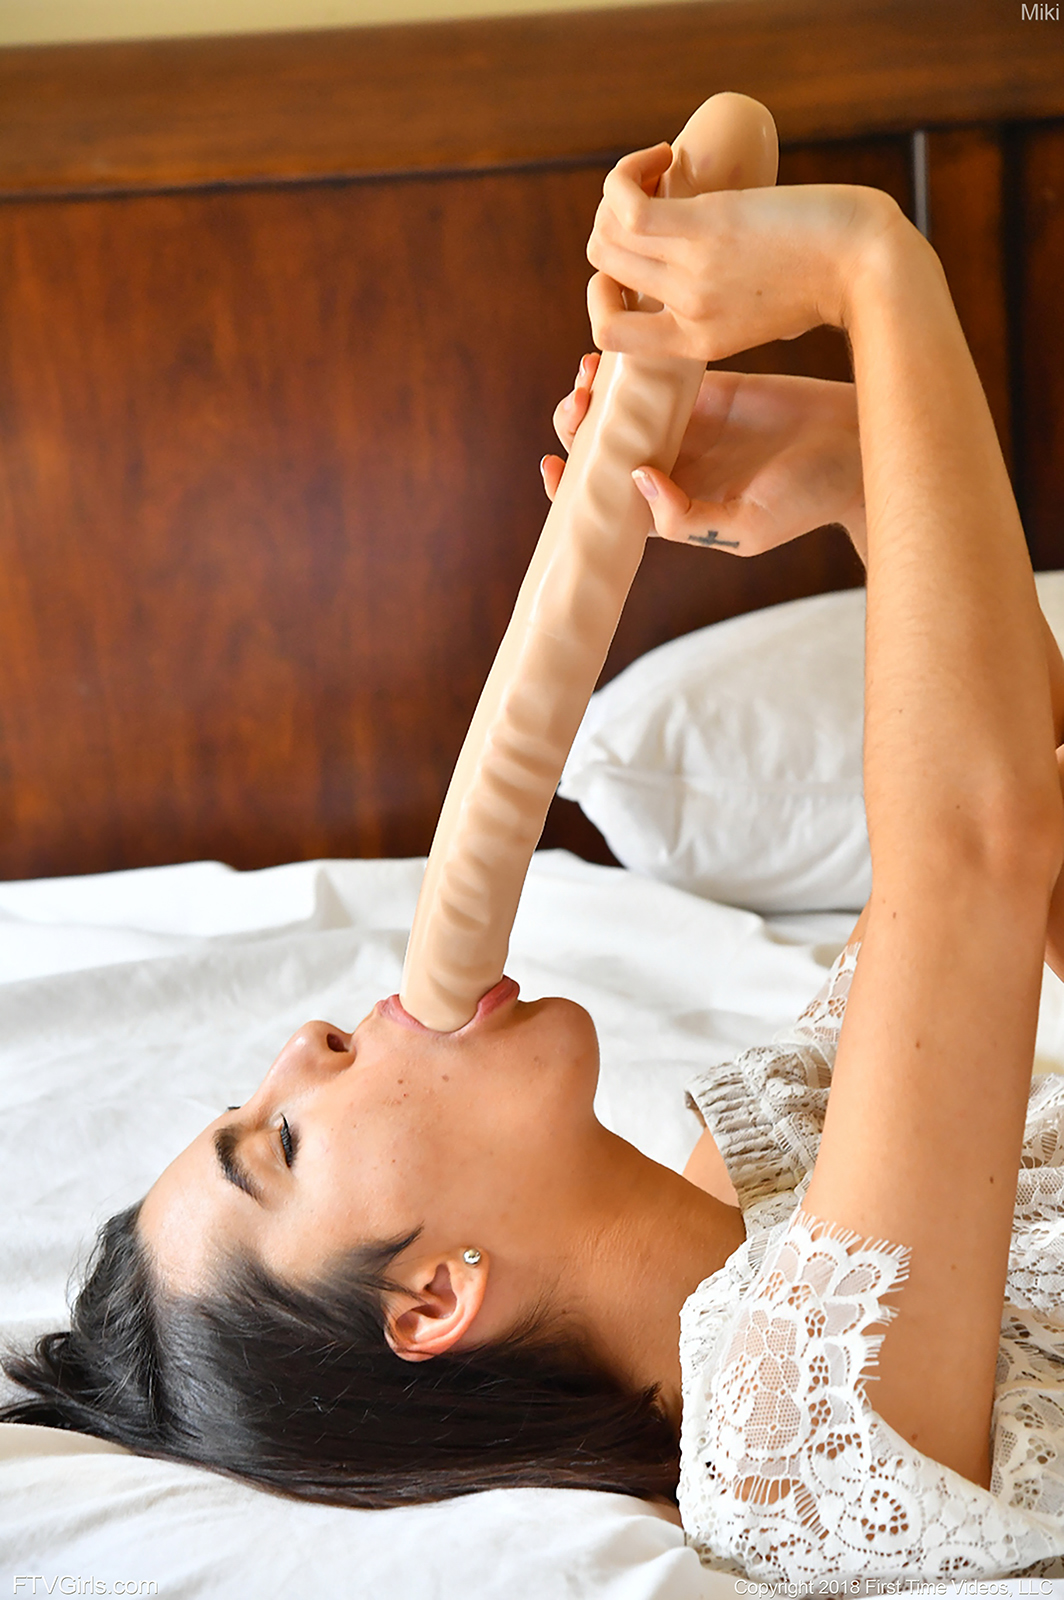 beautiful brunette needs big toys to get satisfied on her own #6